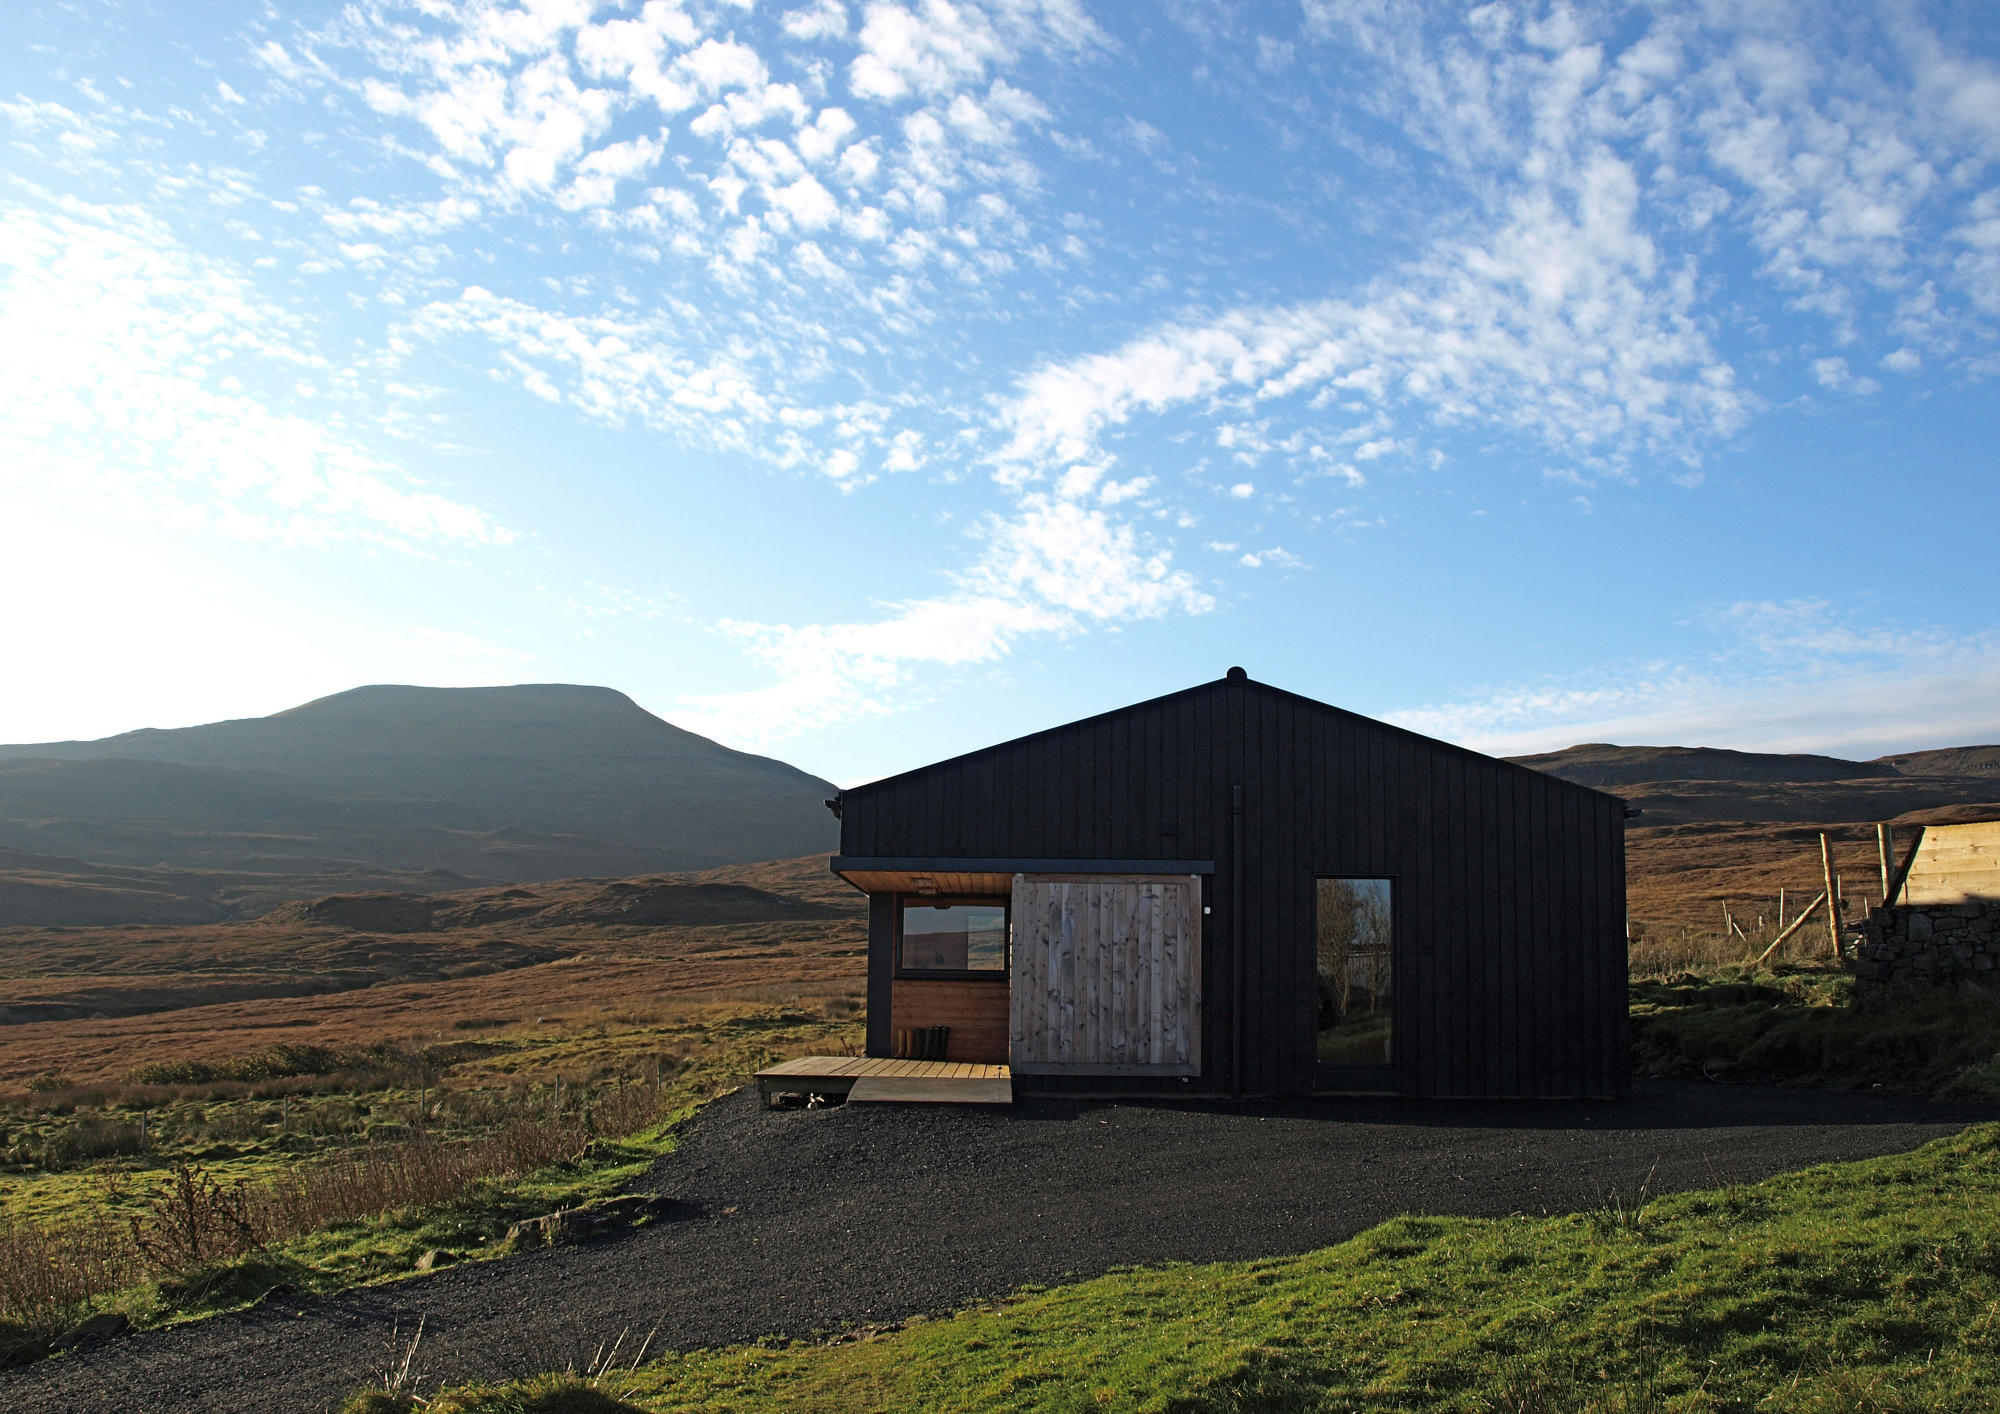 gallery the black shed rural design architects small house bliss published november 12 2014 at 2000 1414 in